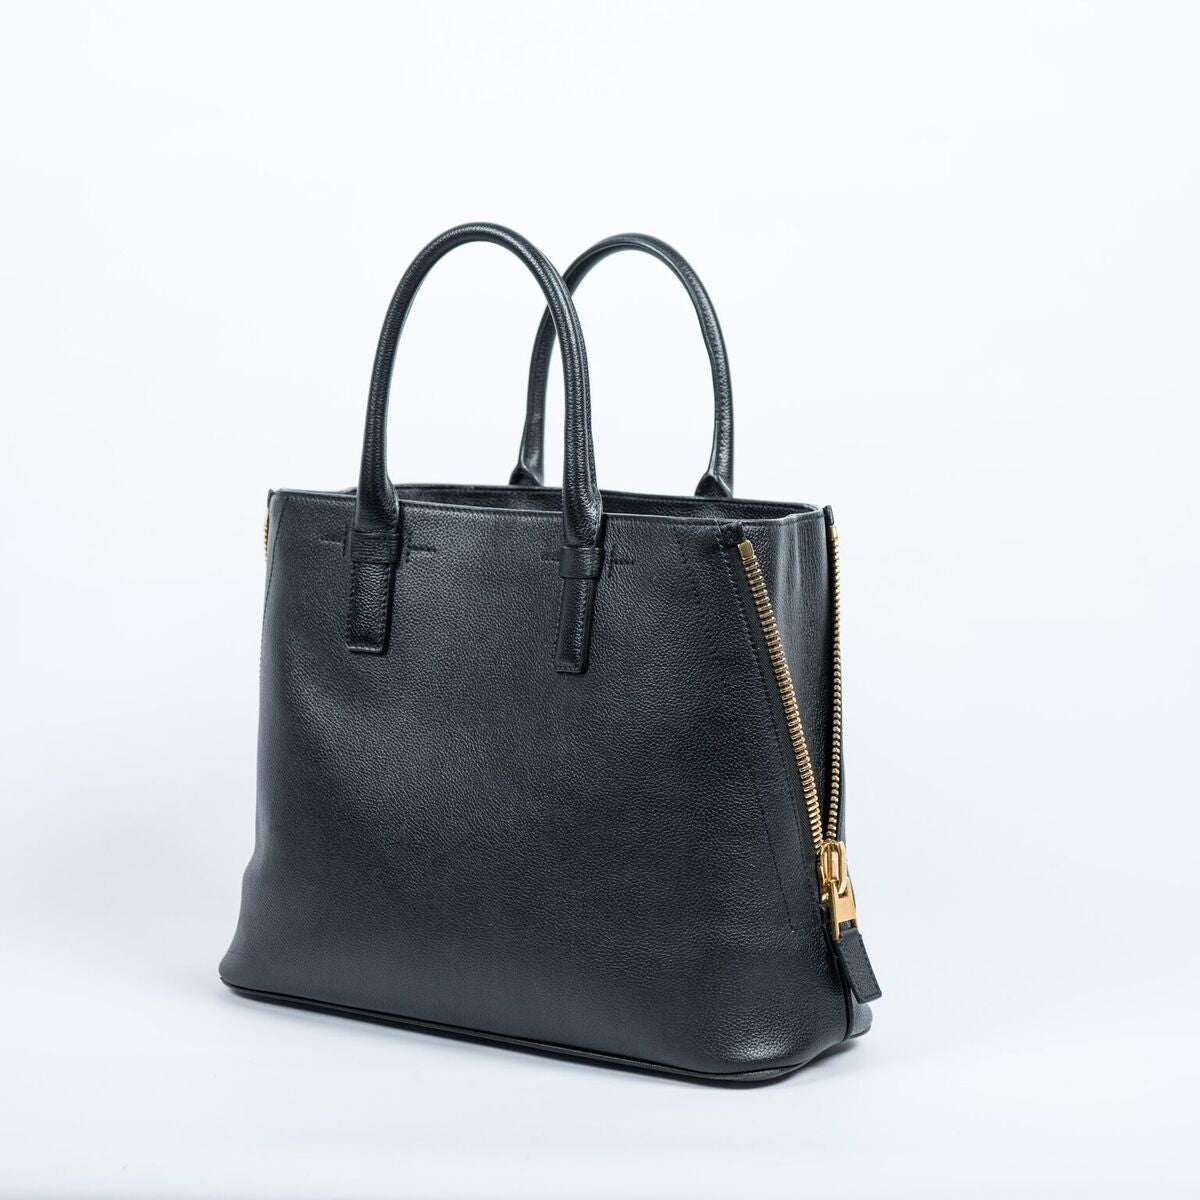 TOM FORD 'Jennifer' Trap Cross Body Tote